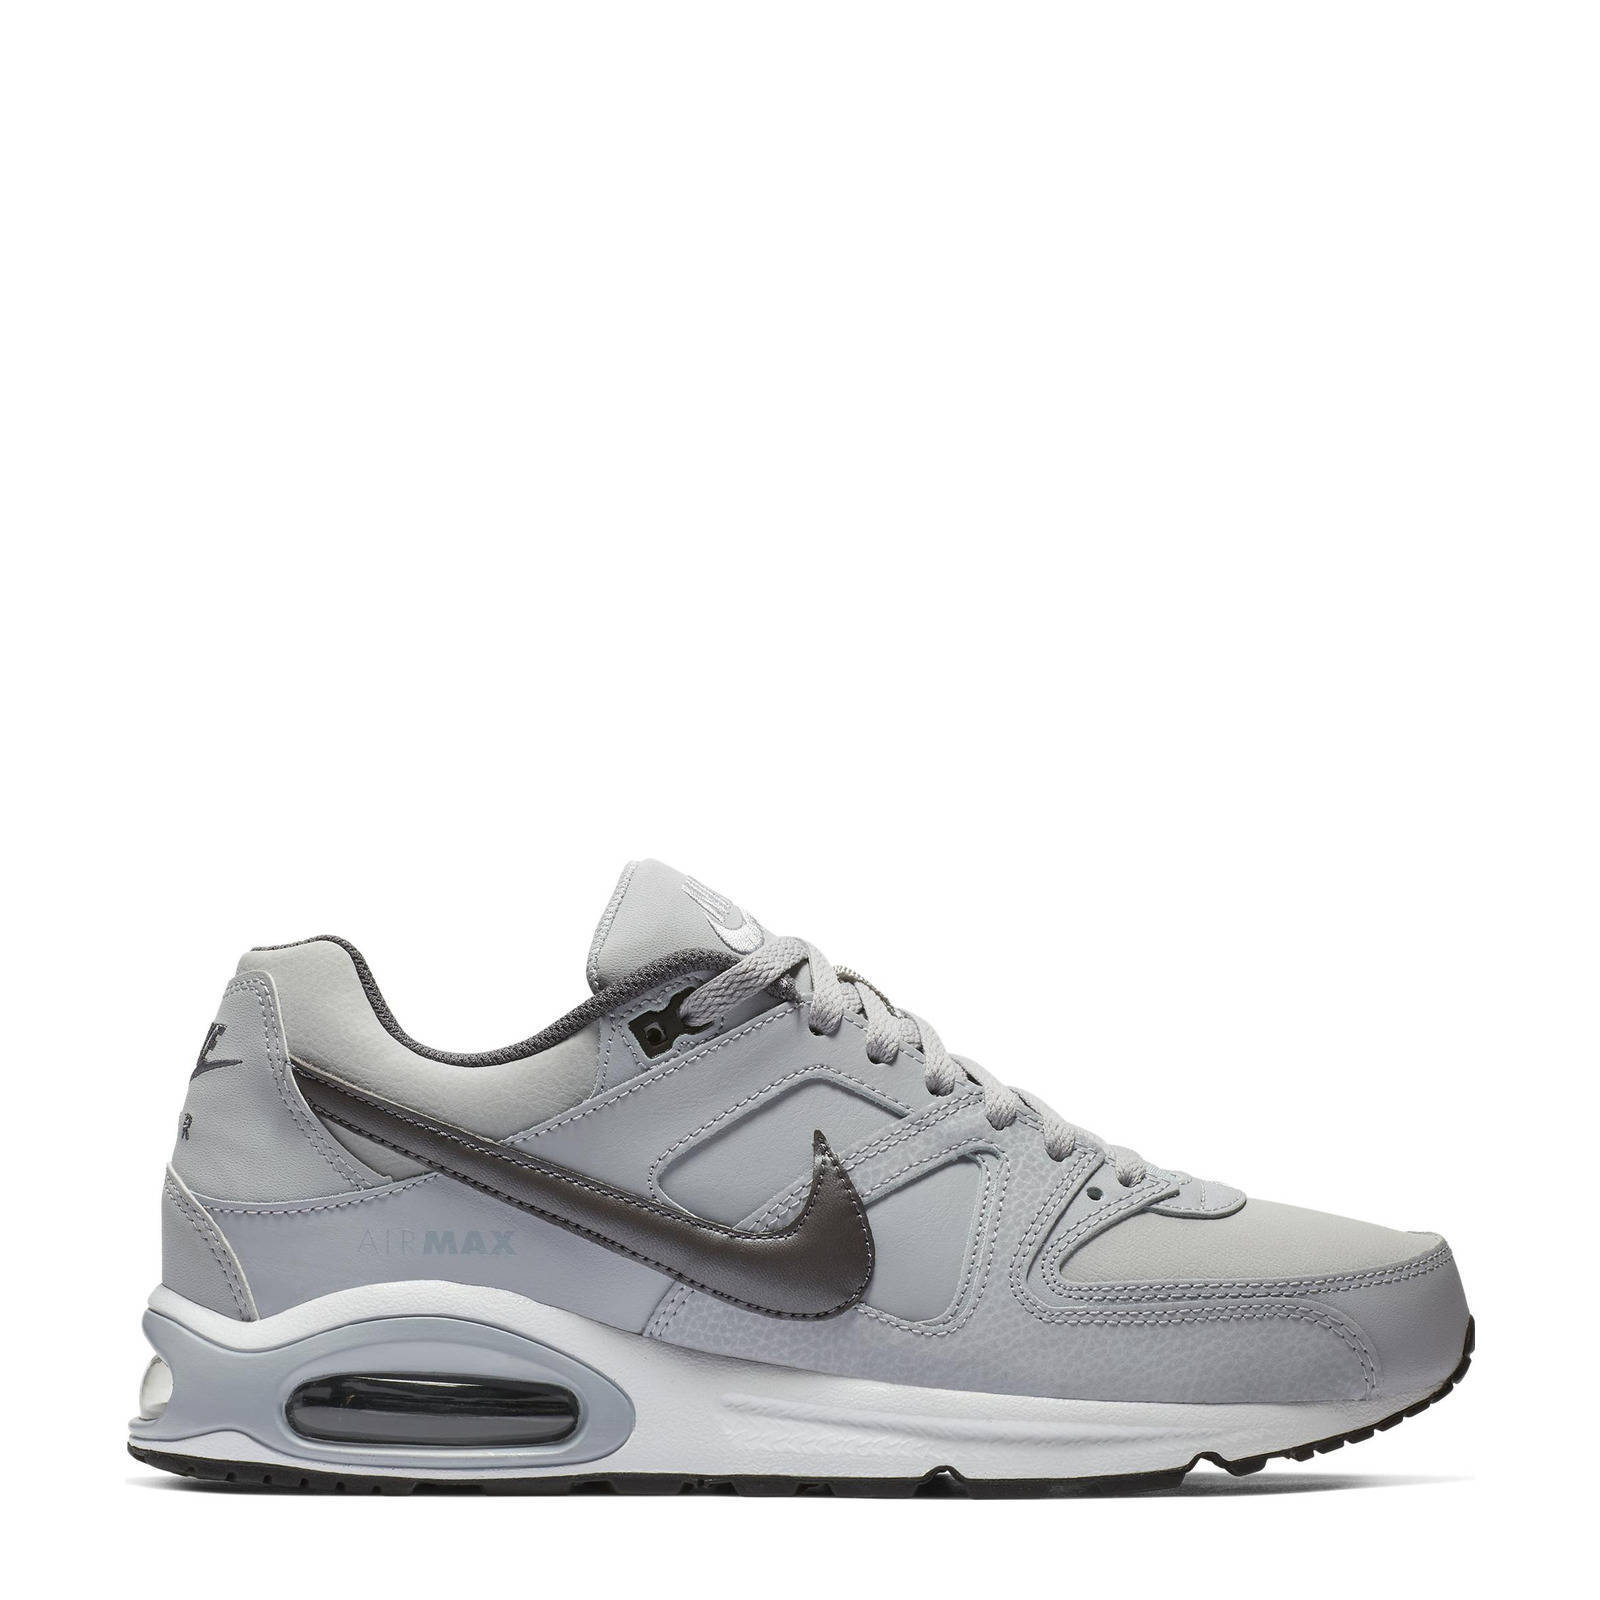 Nike Air Max Command Leather sneakers grijs | wehkamp